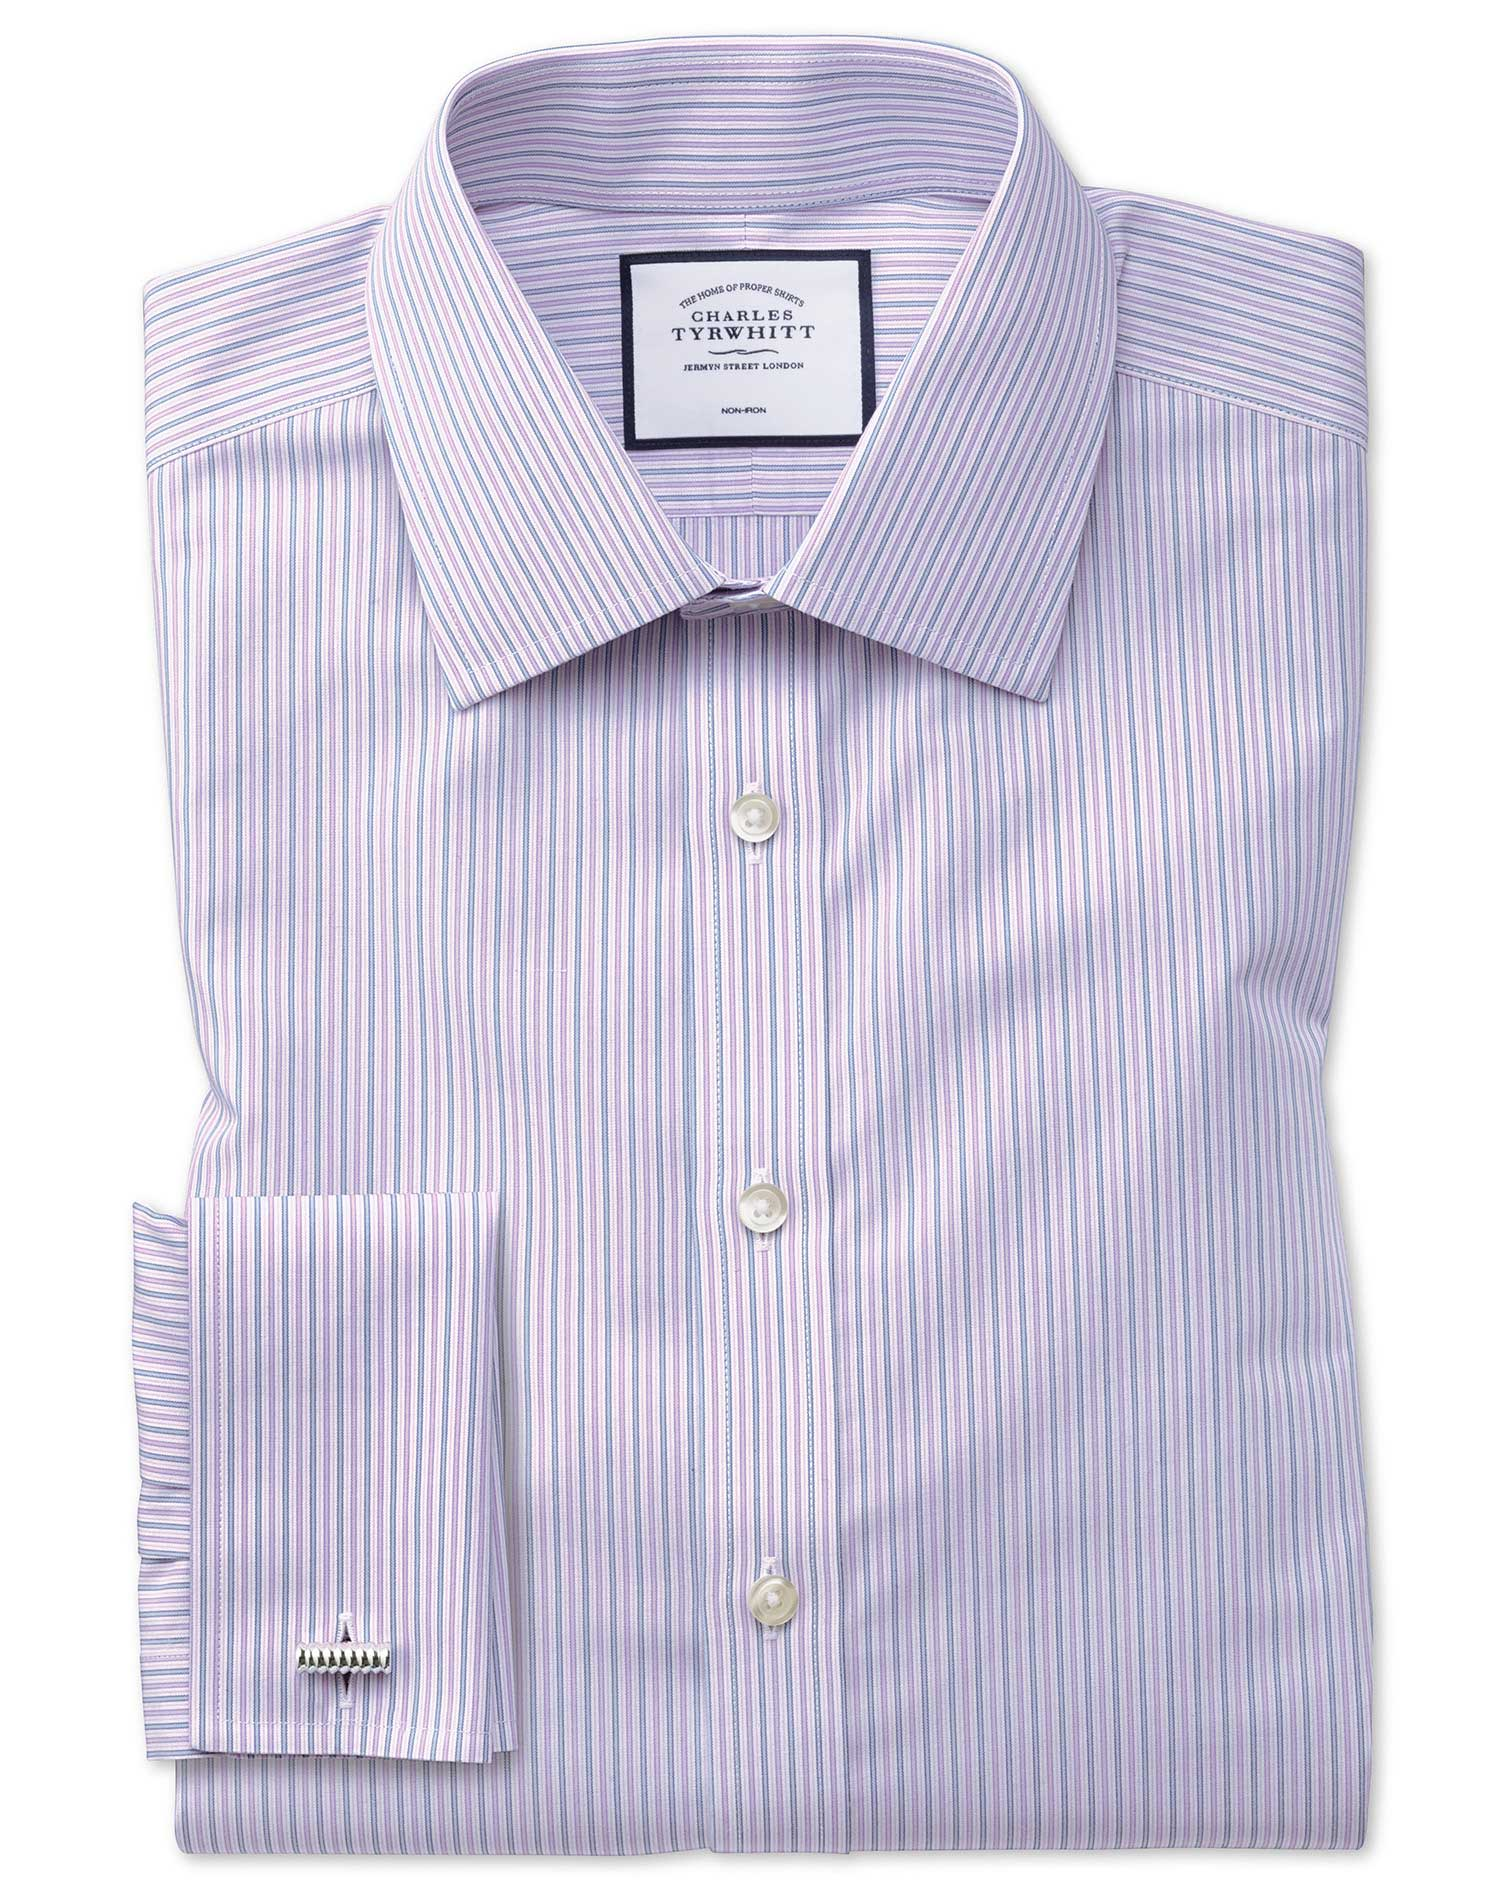 Slim Fit Non-Iron Lilac and Blue Multi Stripe Cotton Formal Shirt Double Cuff Size 15.5/33 by Charle